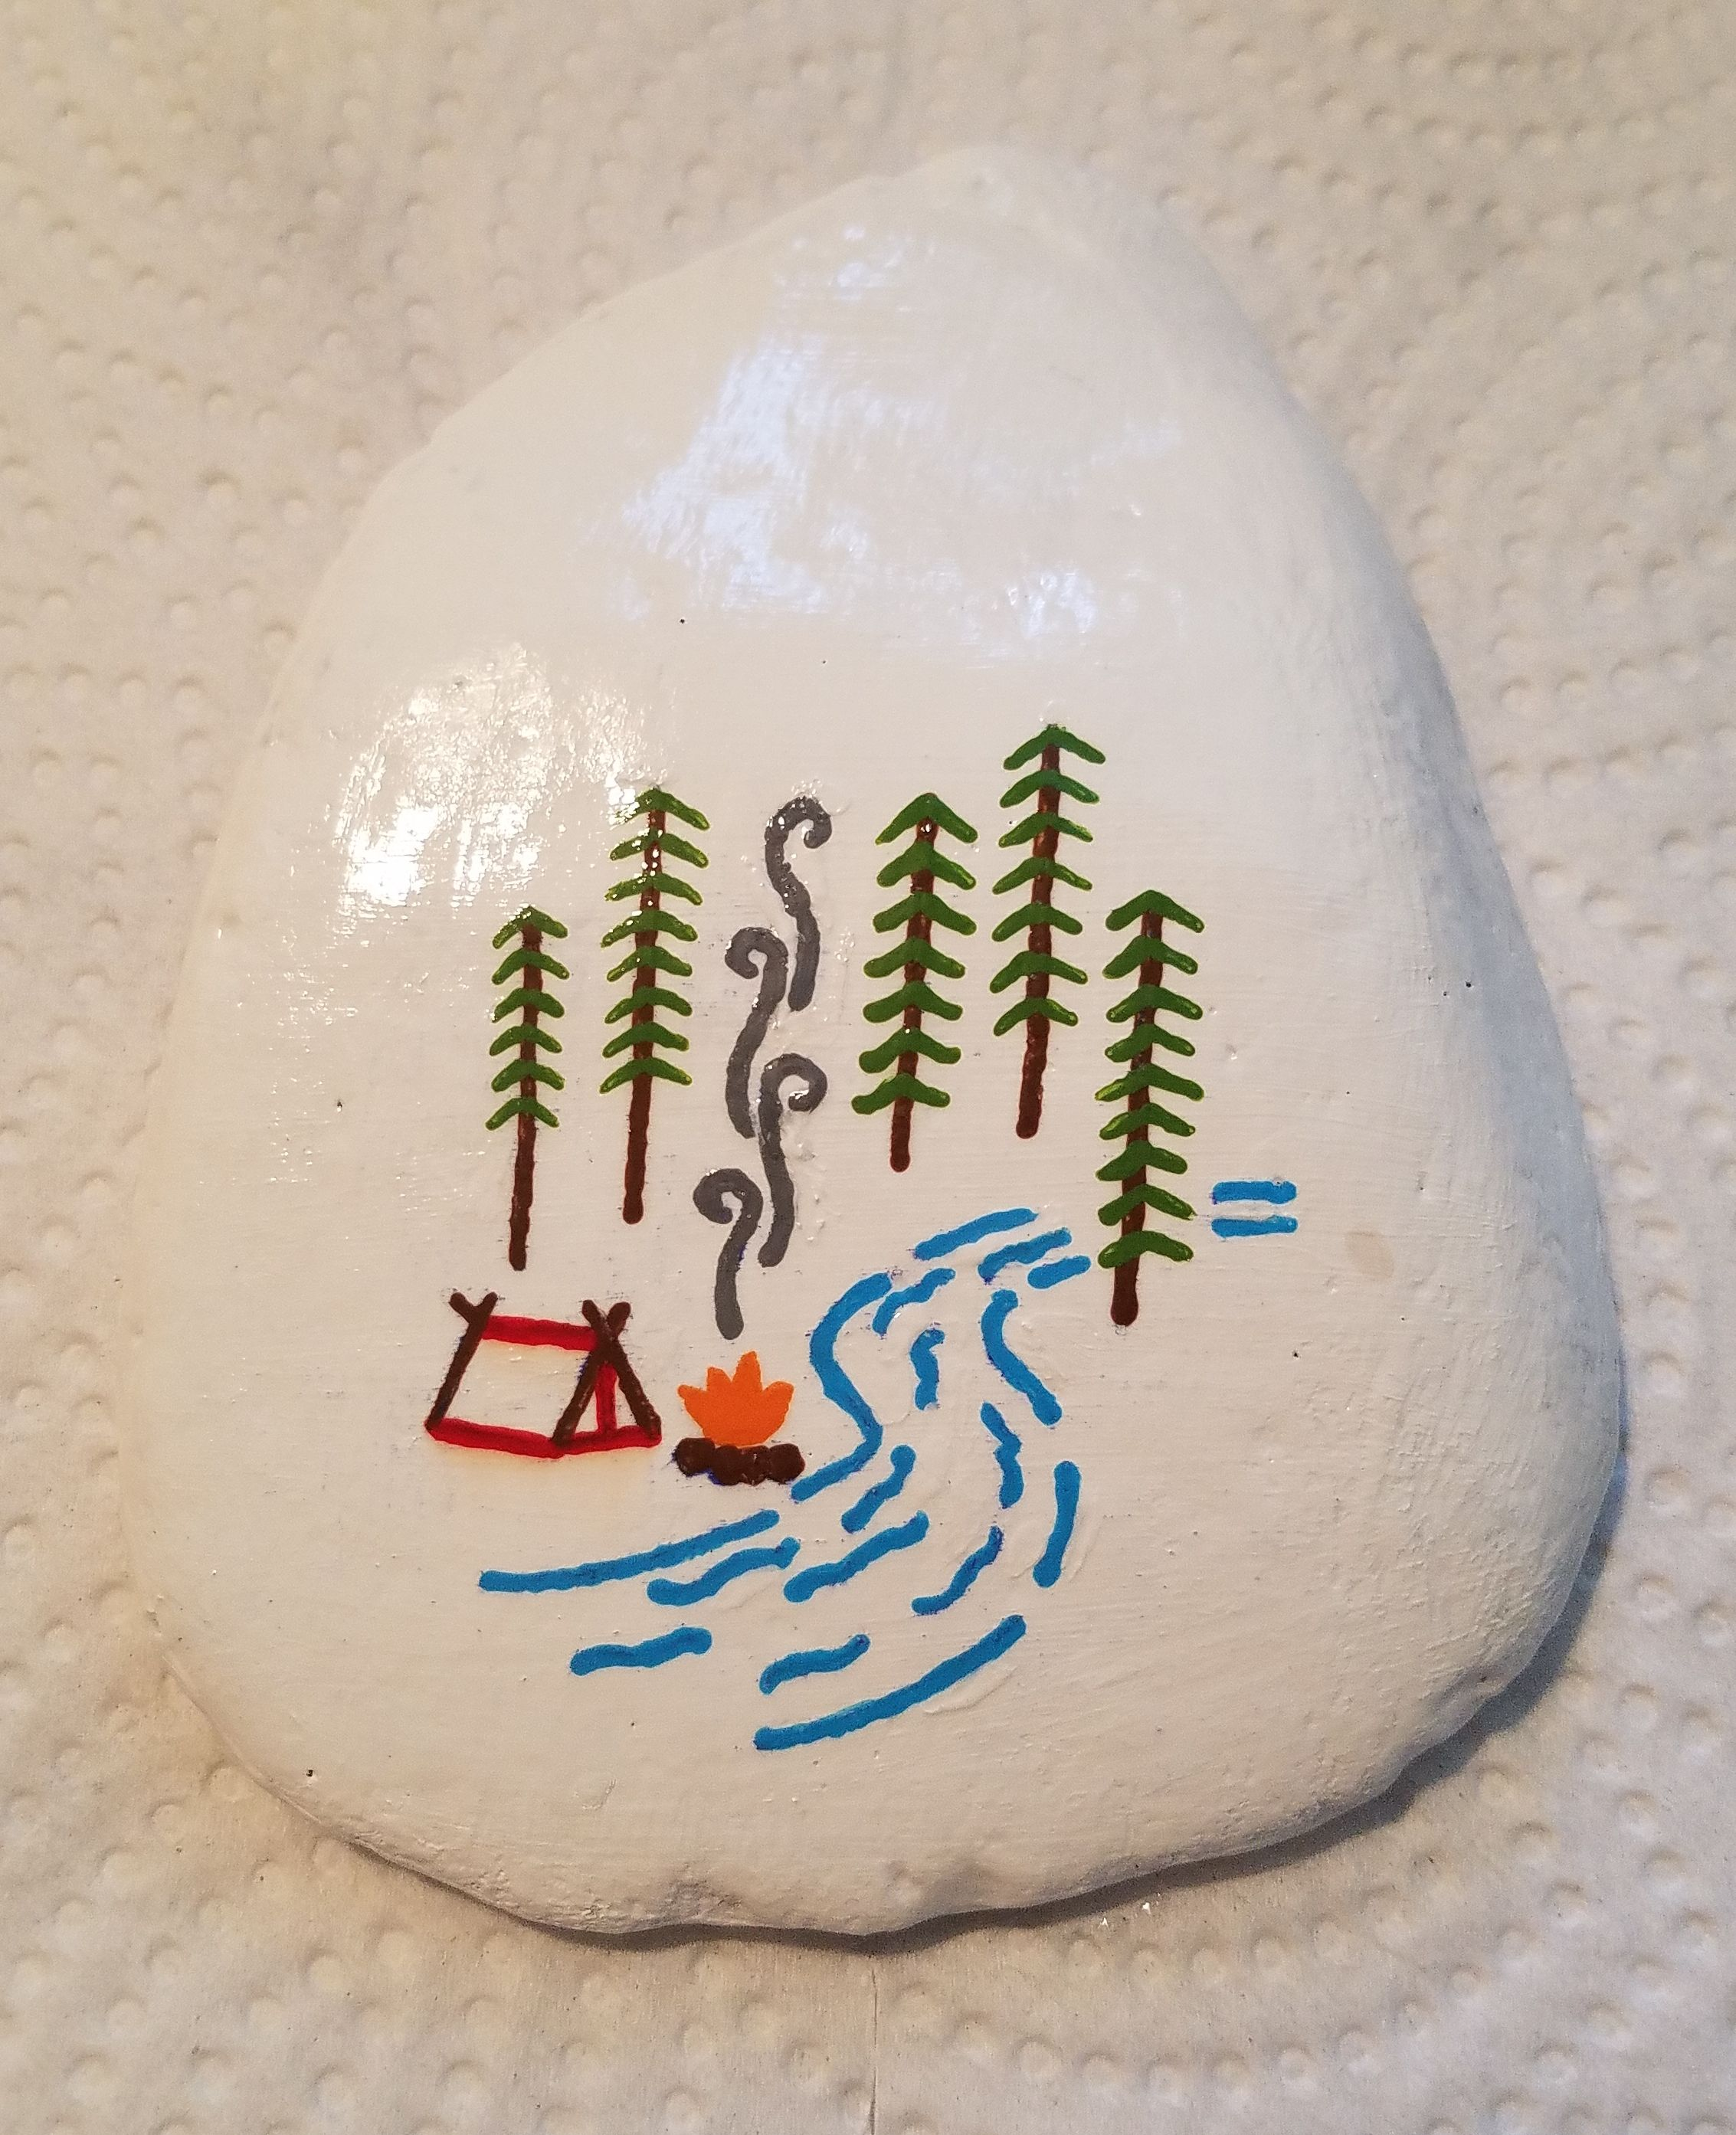 Colorful Camping Scene (Painted Rock) | Painted by Susan Morrow 2017